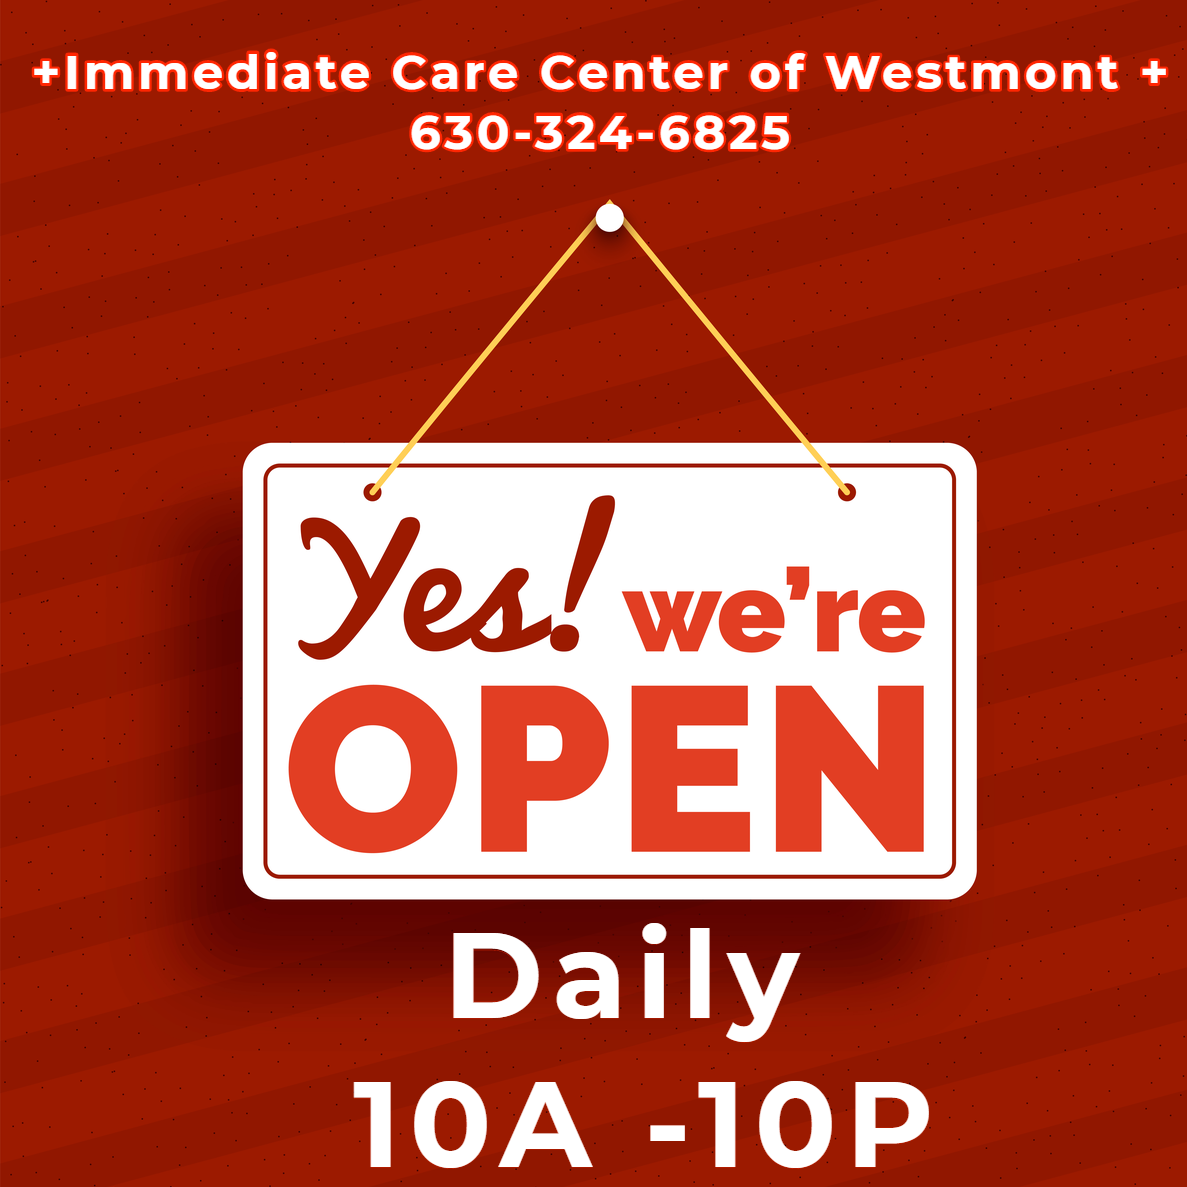 open every day 10a - 10p urgent care westmont, il